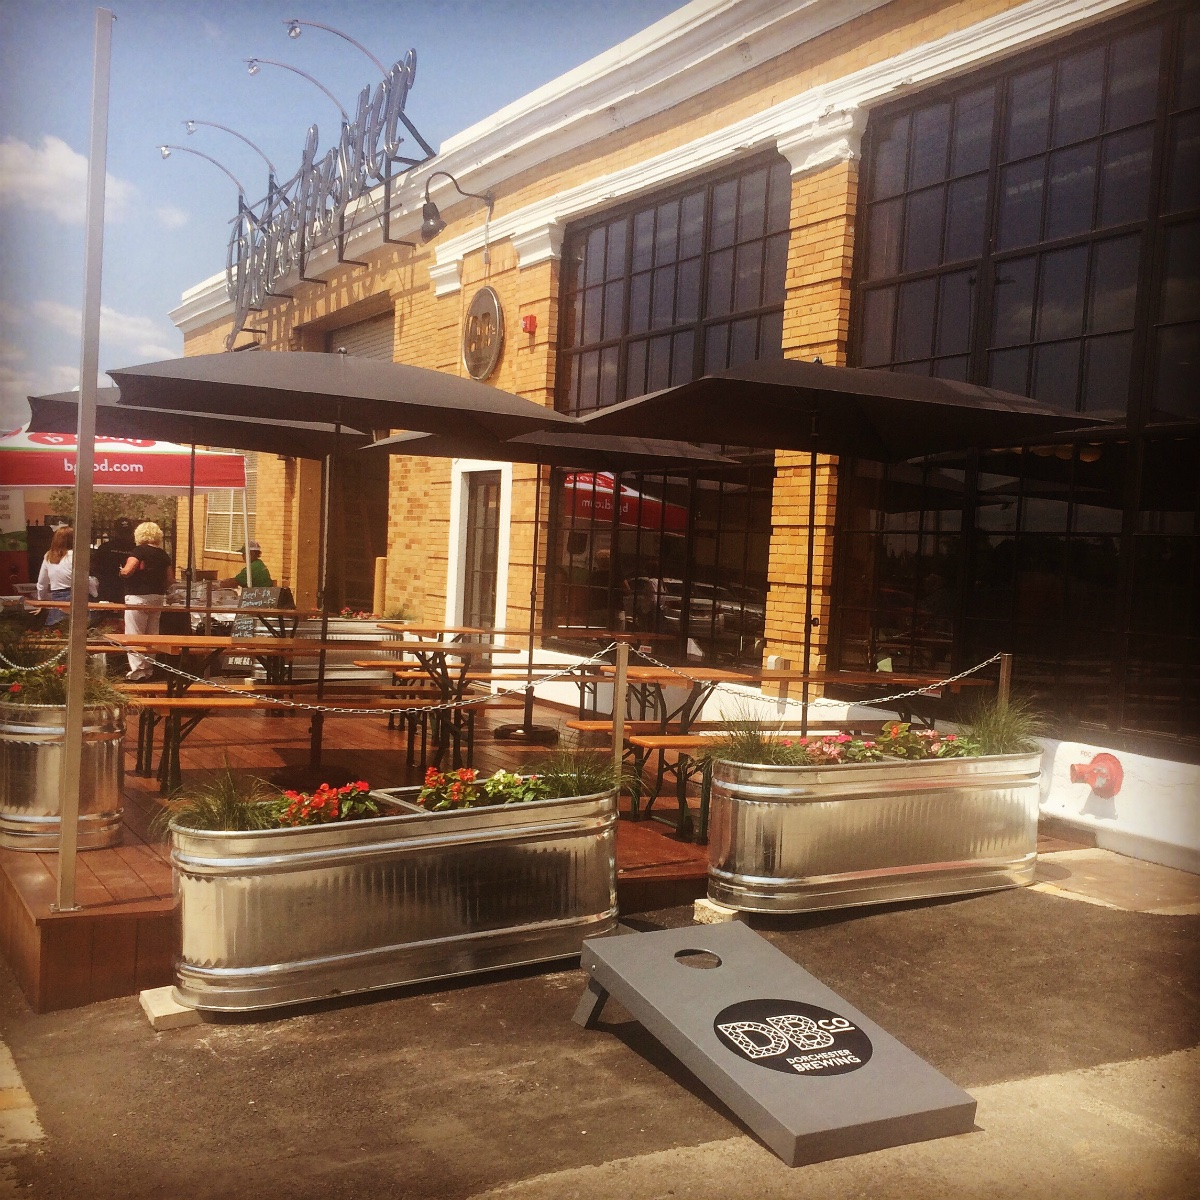 Dorchester Brewing Co. patio